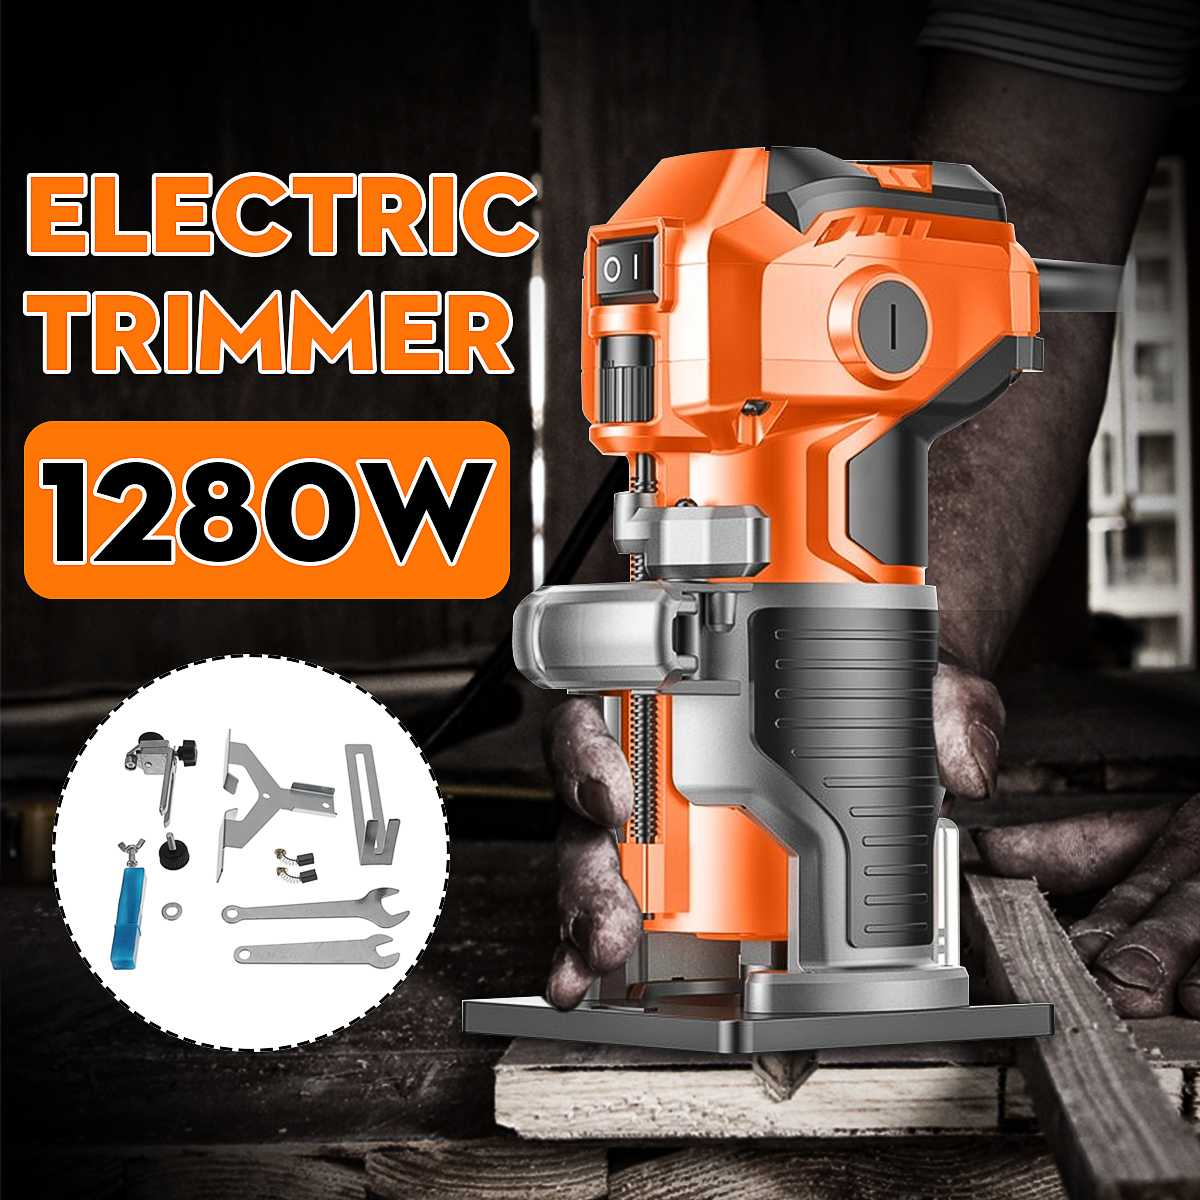 1200W Wood Electric Trimmer Electric Laminate Edge Trimmer Engraving Carving Trimming Machine With Woodworking Router Drill Bits